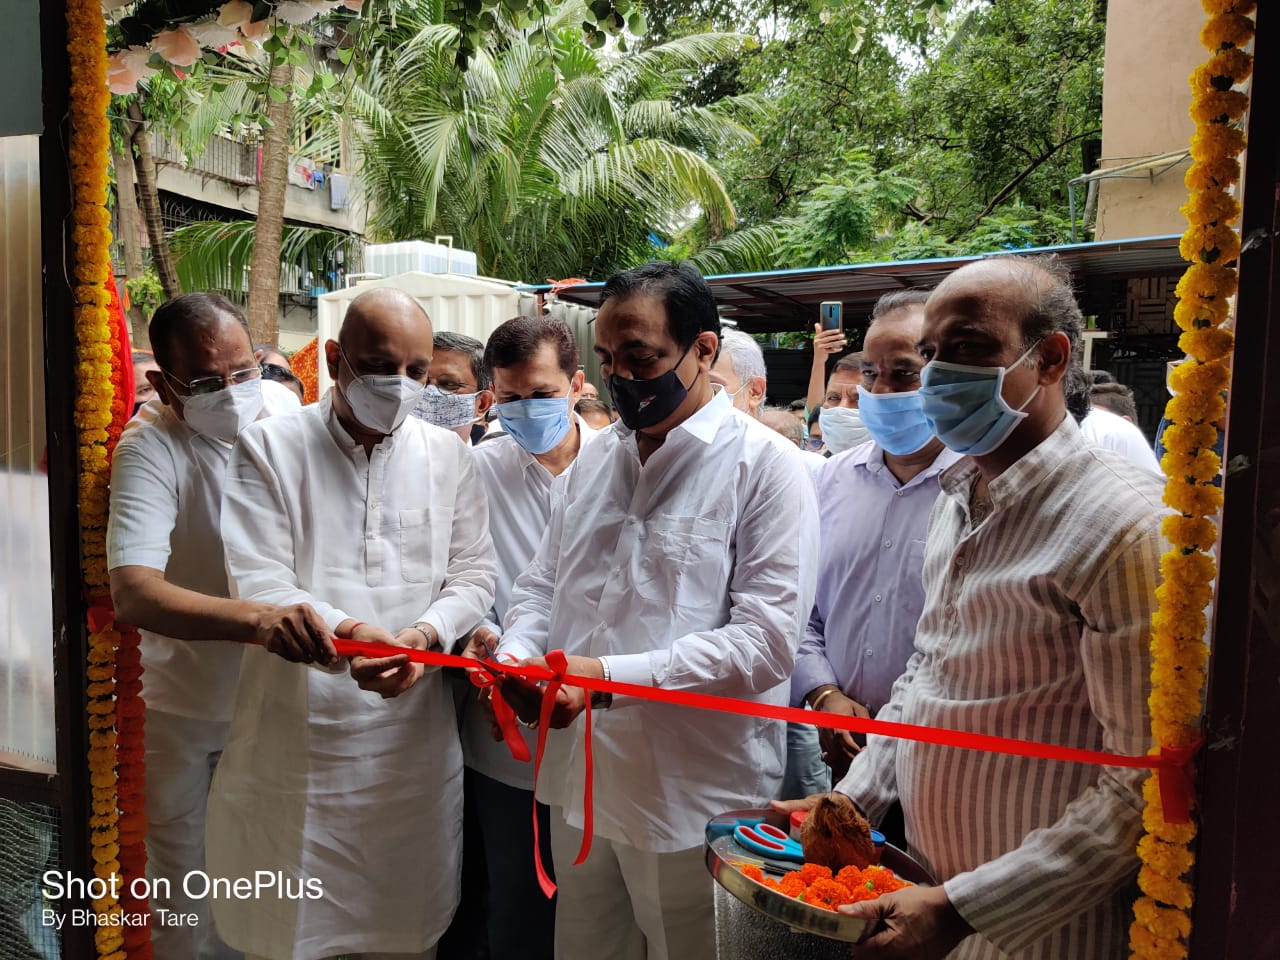 Shree Sai Clinic and Parvatibai Shankarrao Chavan Hospital Is The First Private Hospital In Mumbai At Mid-Segment Level To Set Up a PSA Oxygen Generation Plant